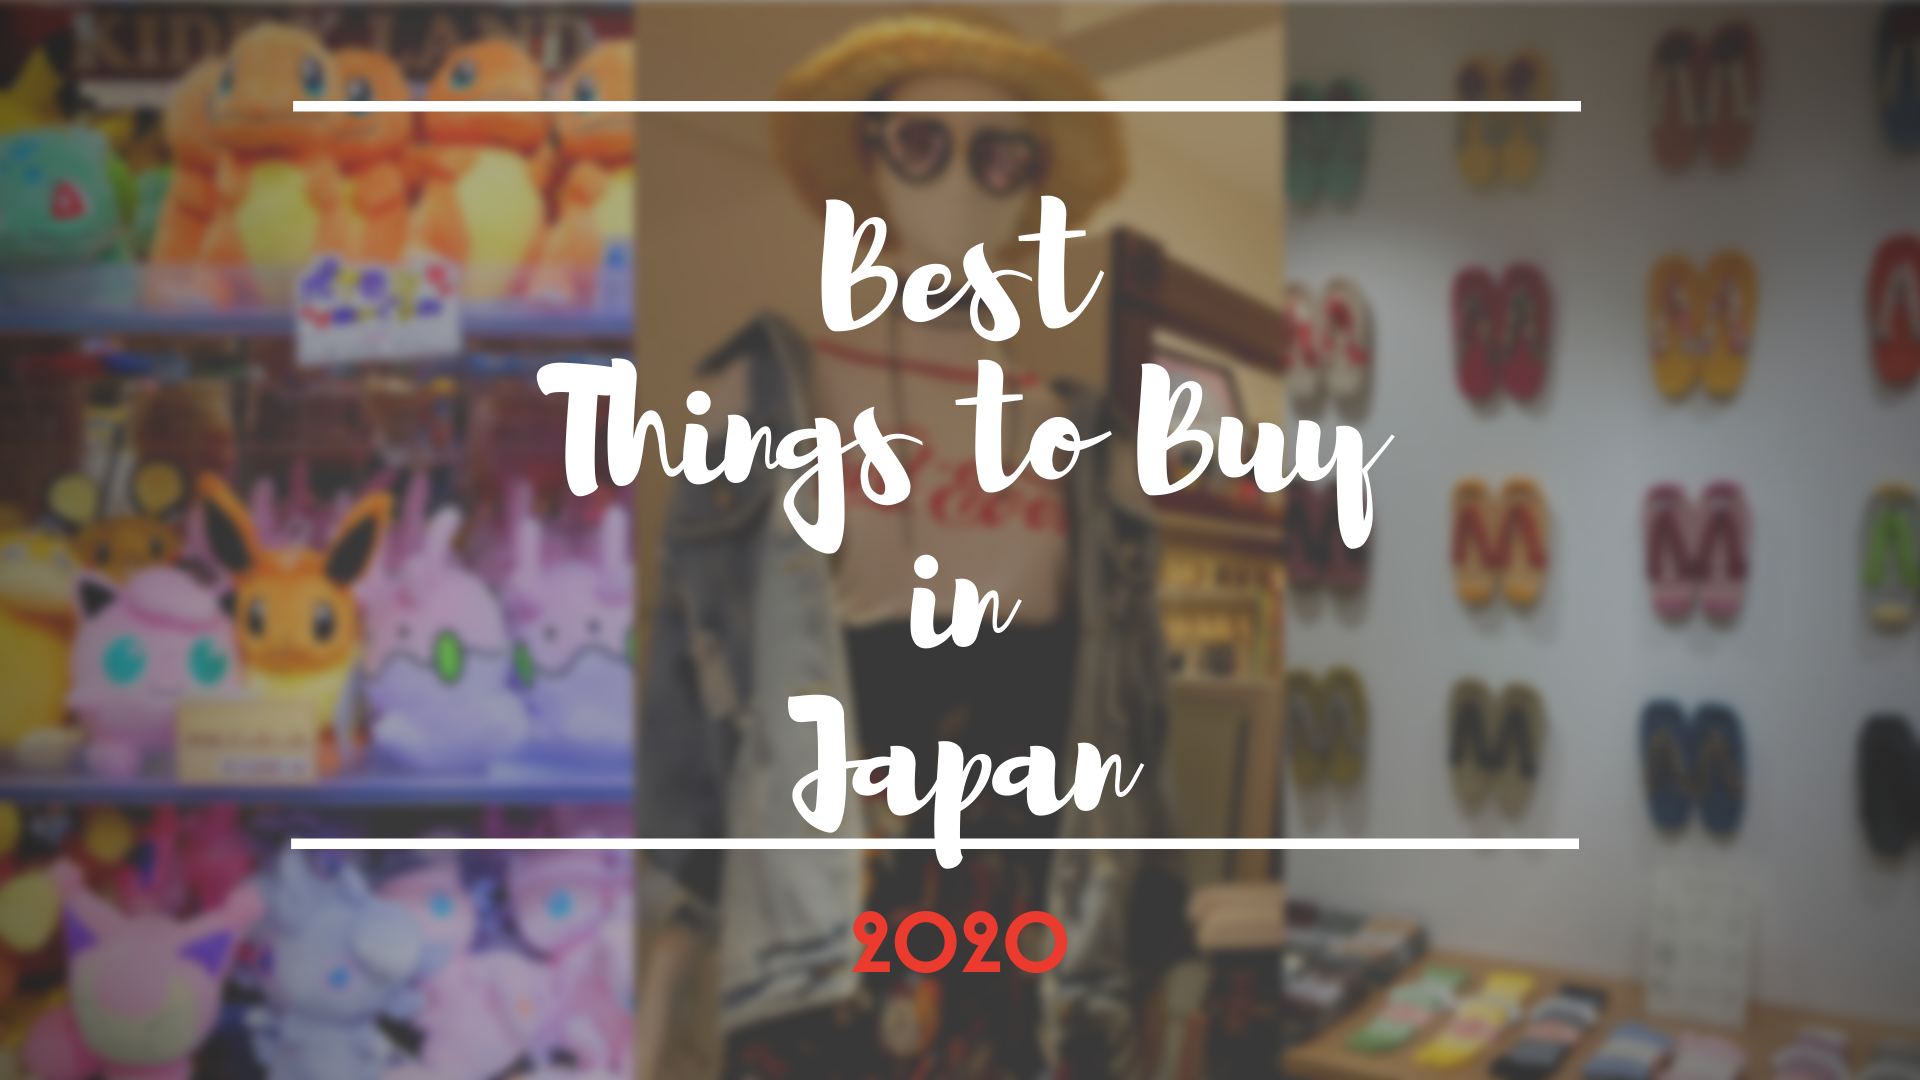 What to Buy in Japan 2020